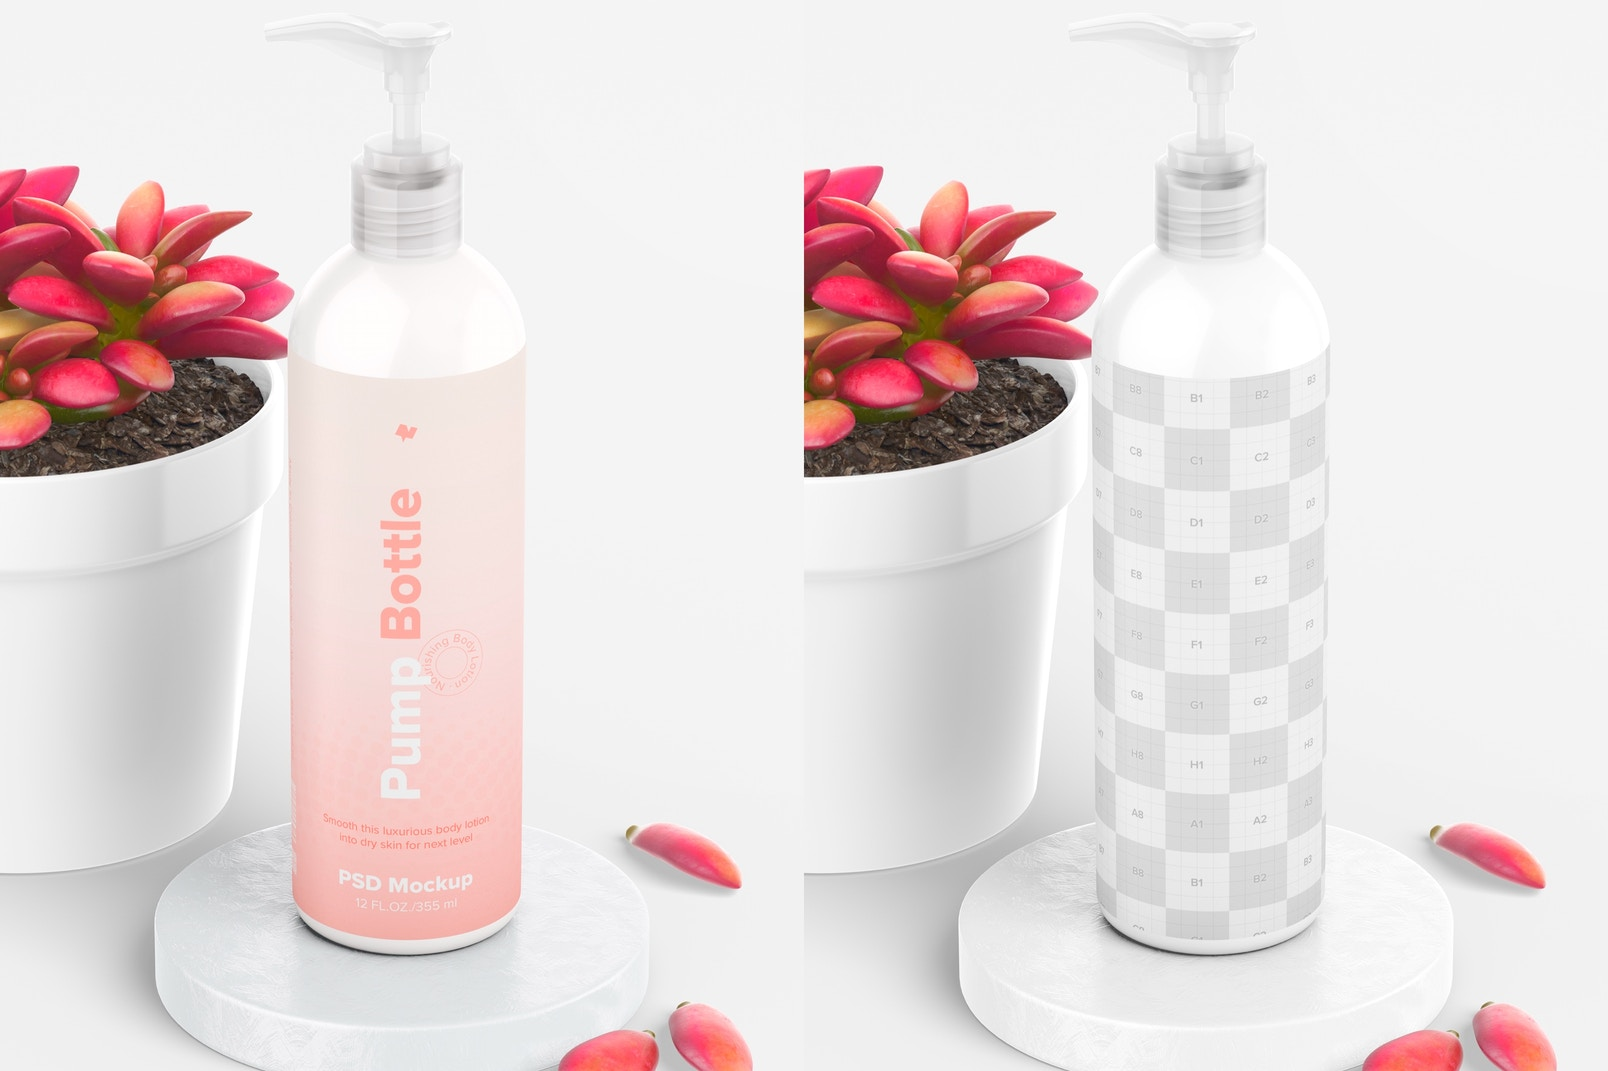 12 oz Pump Rounded Bottle with Pot Plant Mockup